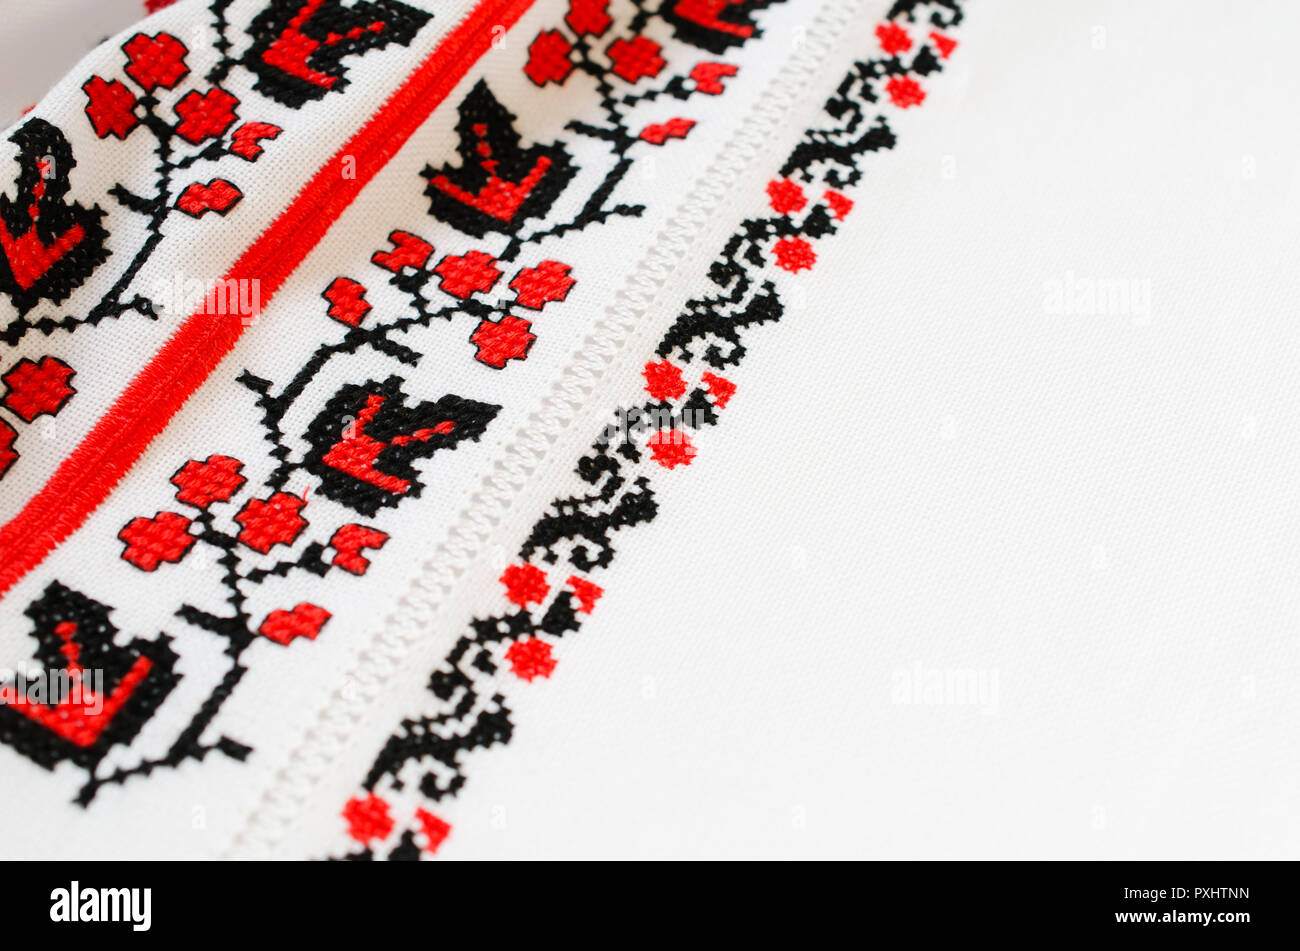 Slavic Cross Stitch by Red and Black Threads in the View of Viburnum. Ukrainian Folk Embroidery Pattern. Hemming. - Stock Image